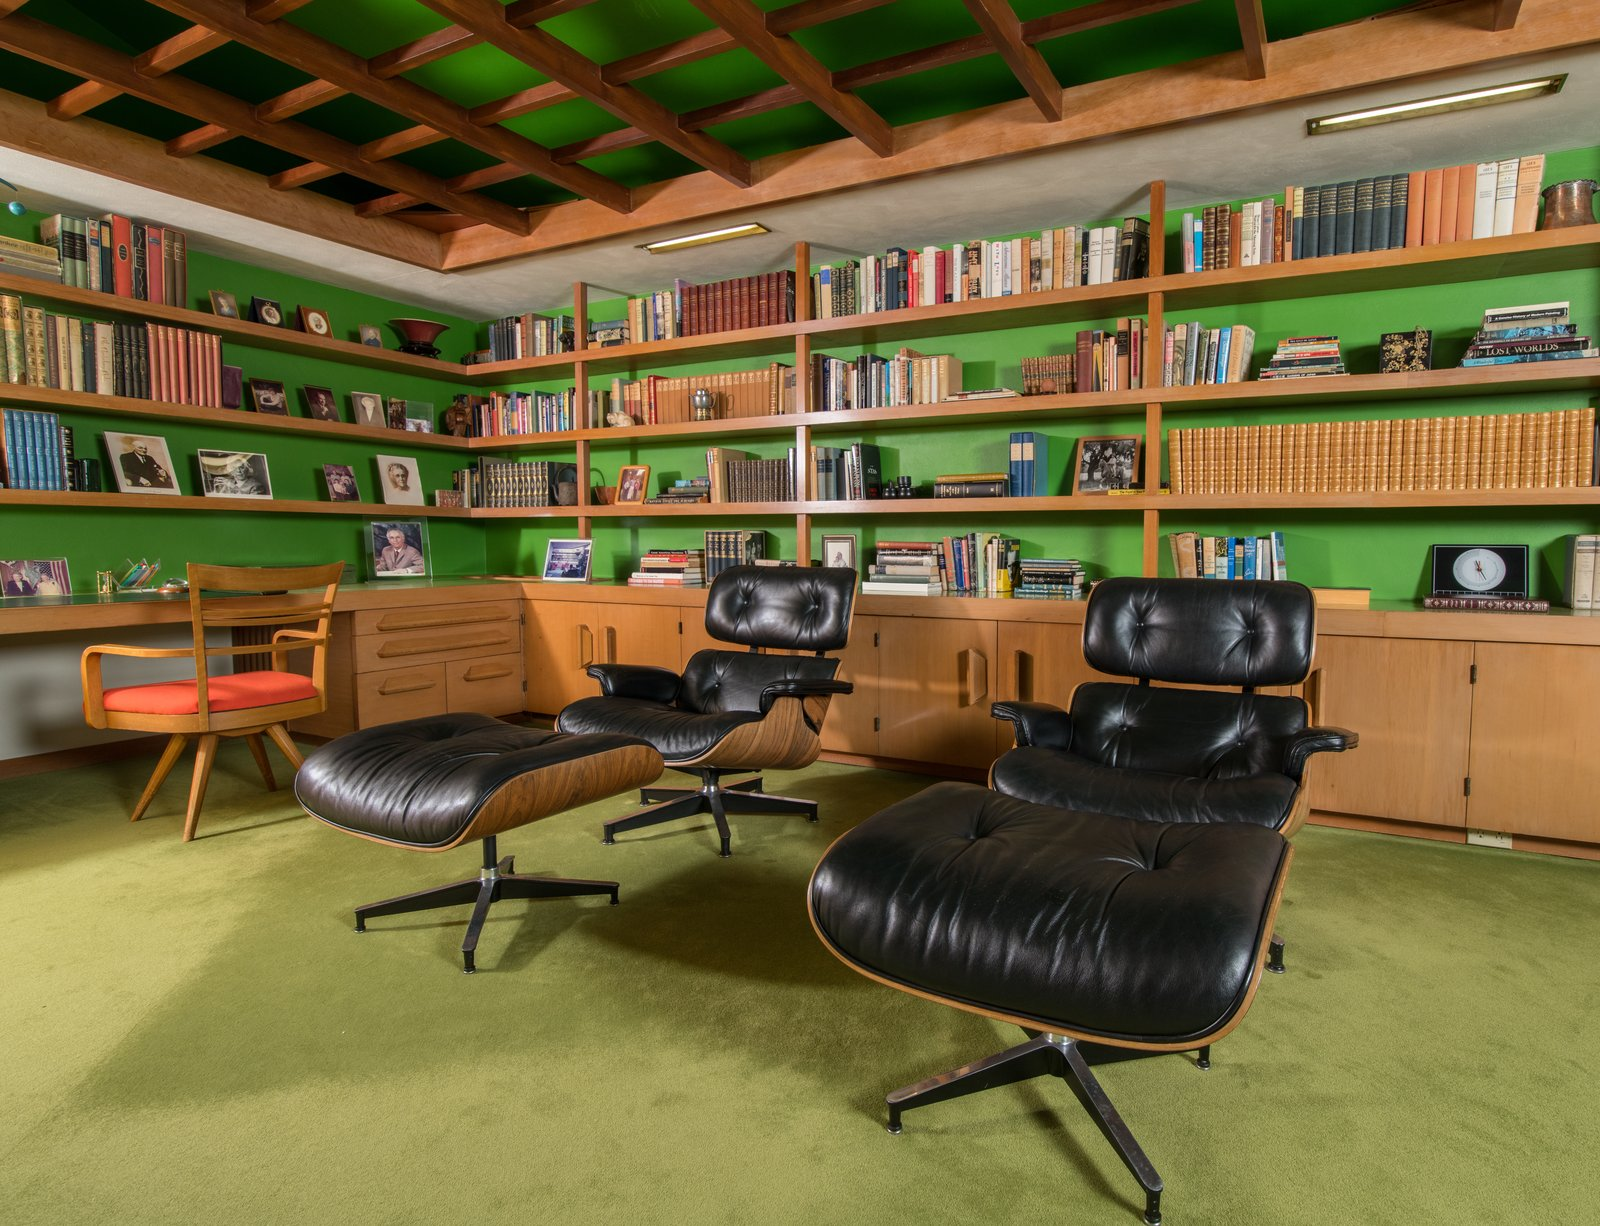 """The rosewood-veneered molded plywood and leather swivel Eames Lounge Chair and Ottoman, which was designed for the furniture company Herman Miller, was intended to have a """"warm receptive look of a well-used first baseman's mitt,"""" which was achieved by buttoning the leather to create creasing in the black hide."""